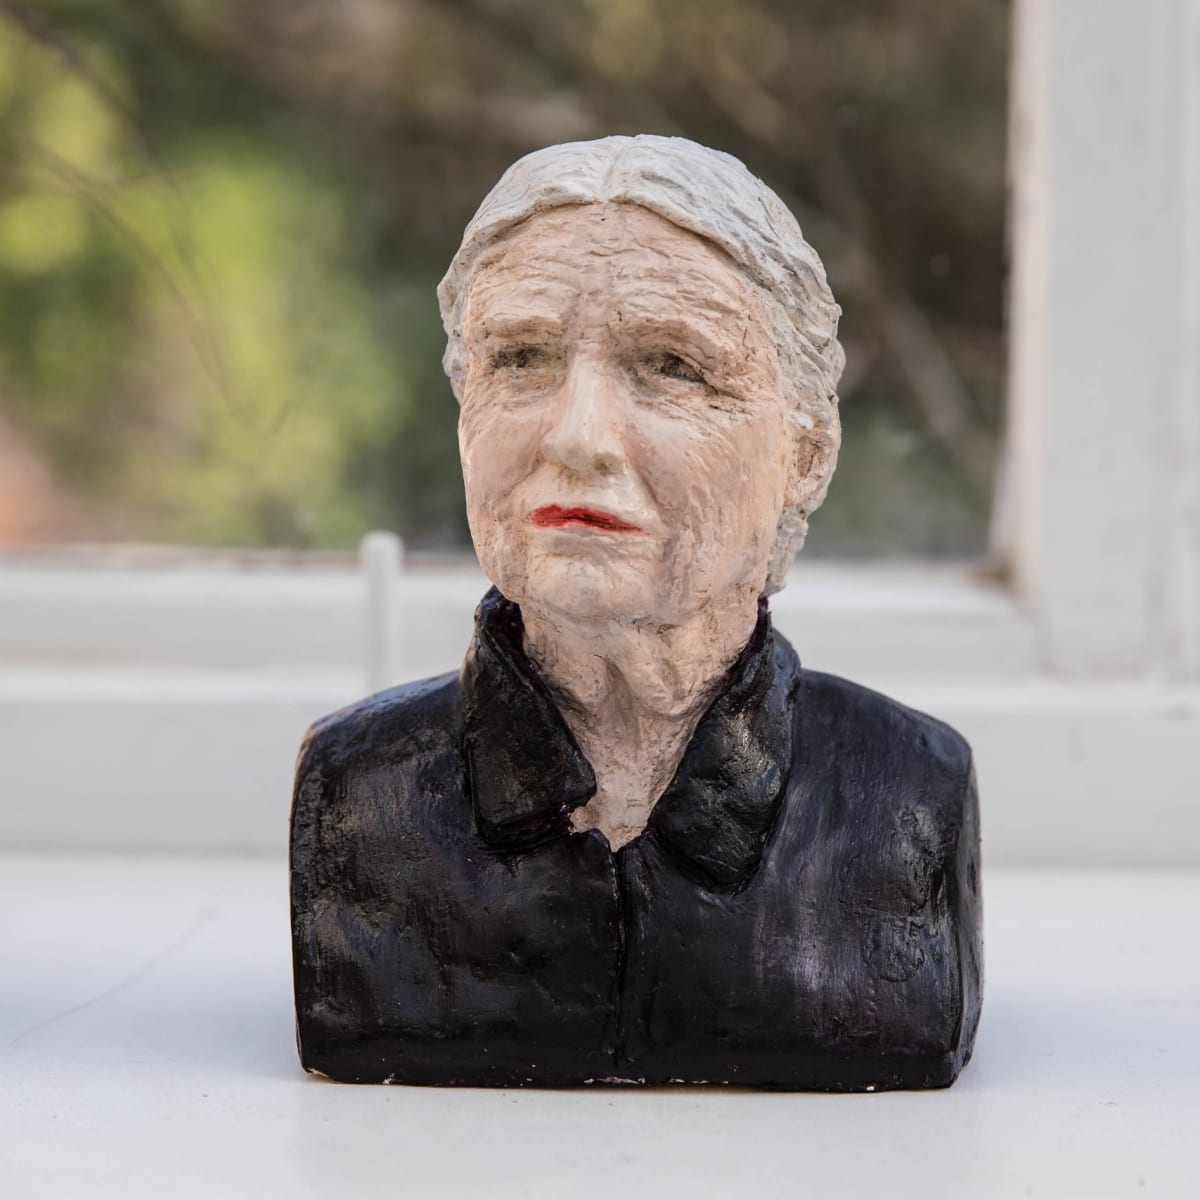 Nicole Farhi Doris Lessing ciment fondu and acrylic; hand-painted bronze casts available to purchase 18 x 15 x 7 cm edition of 7 + 3 APs